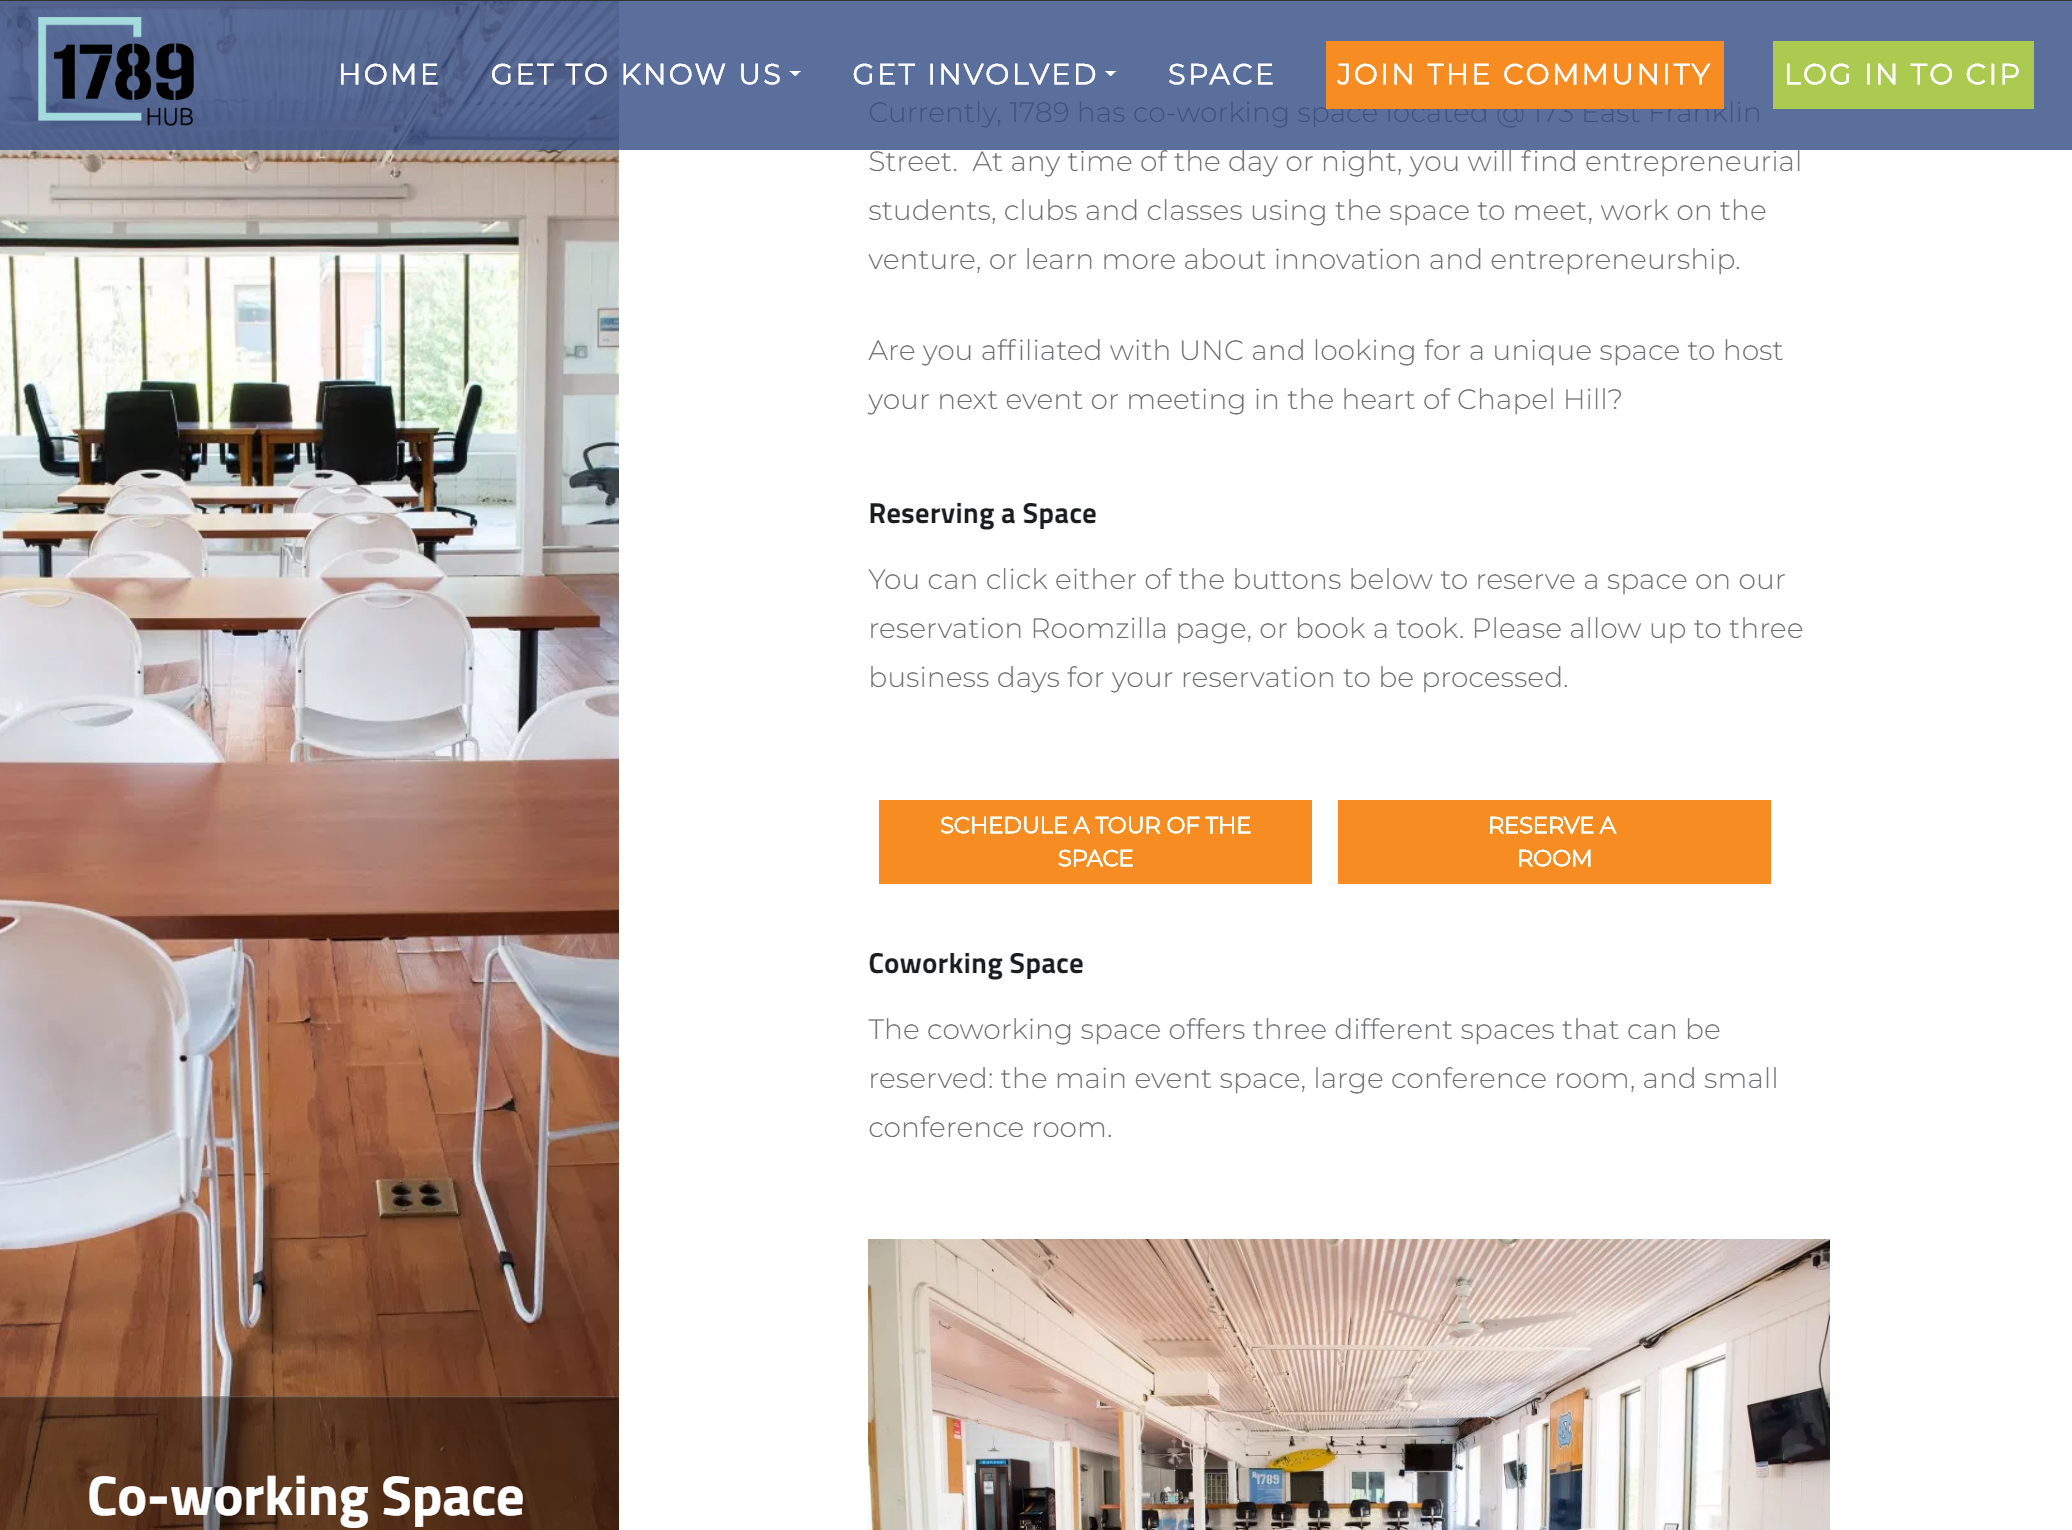 Screenshot of Co-working Space Page